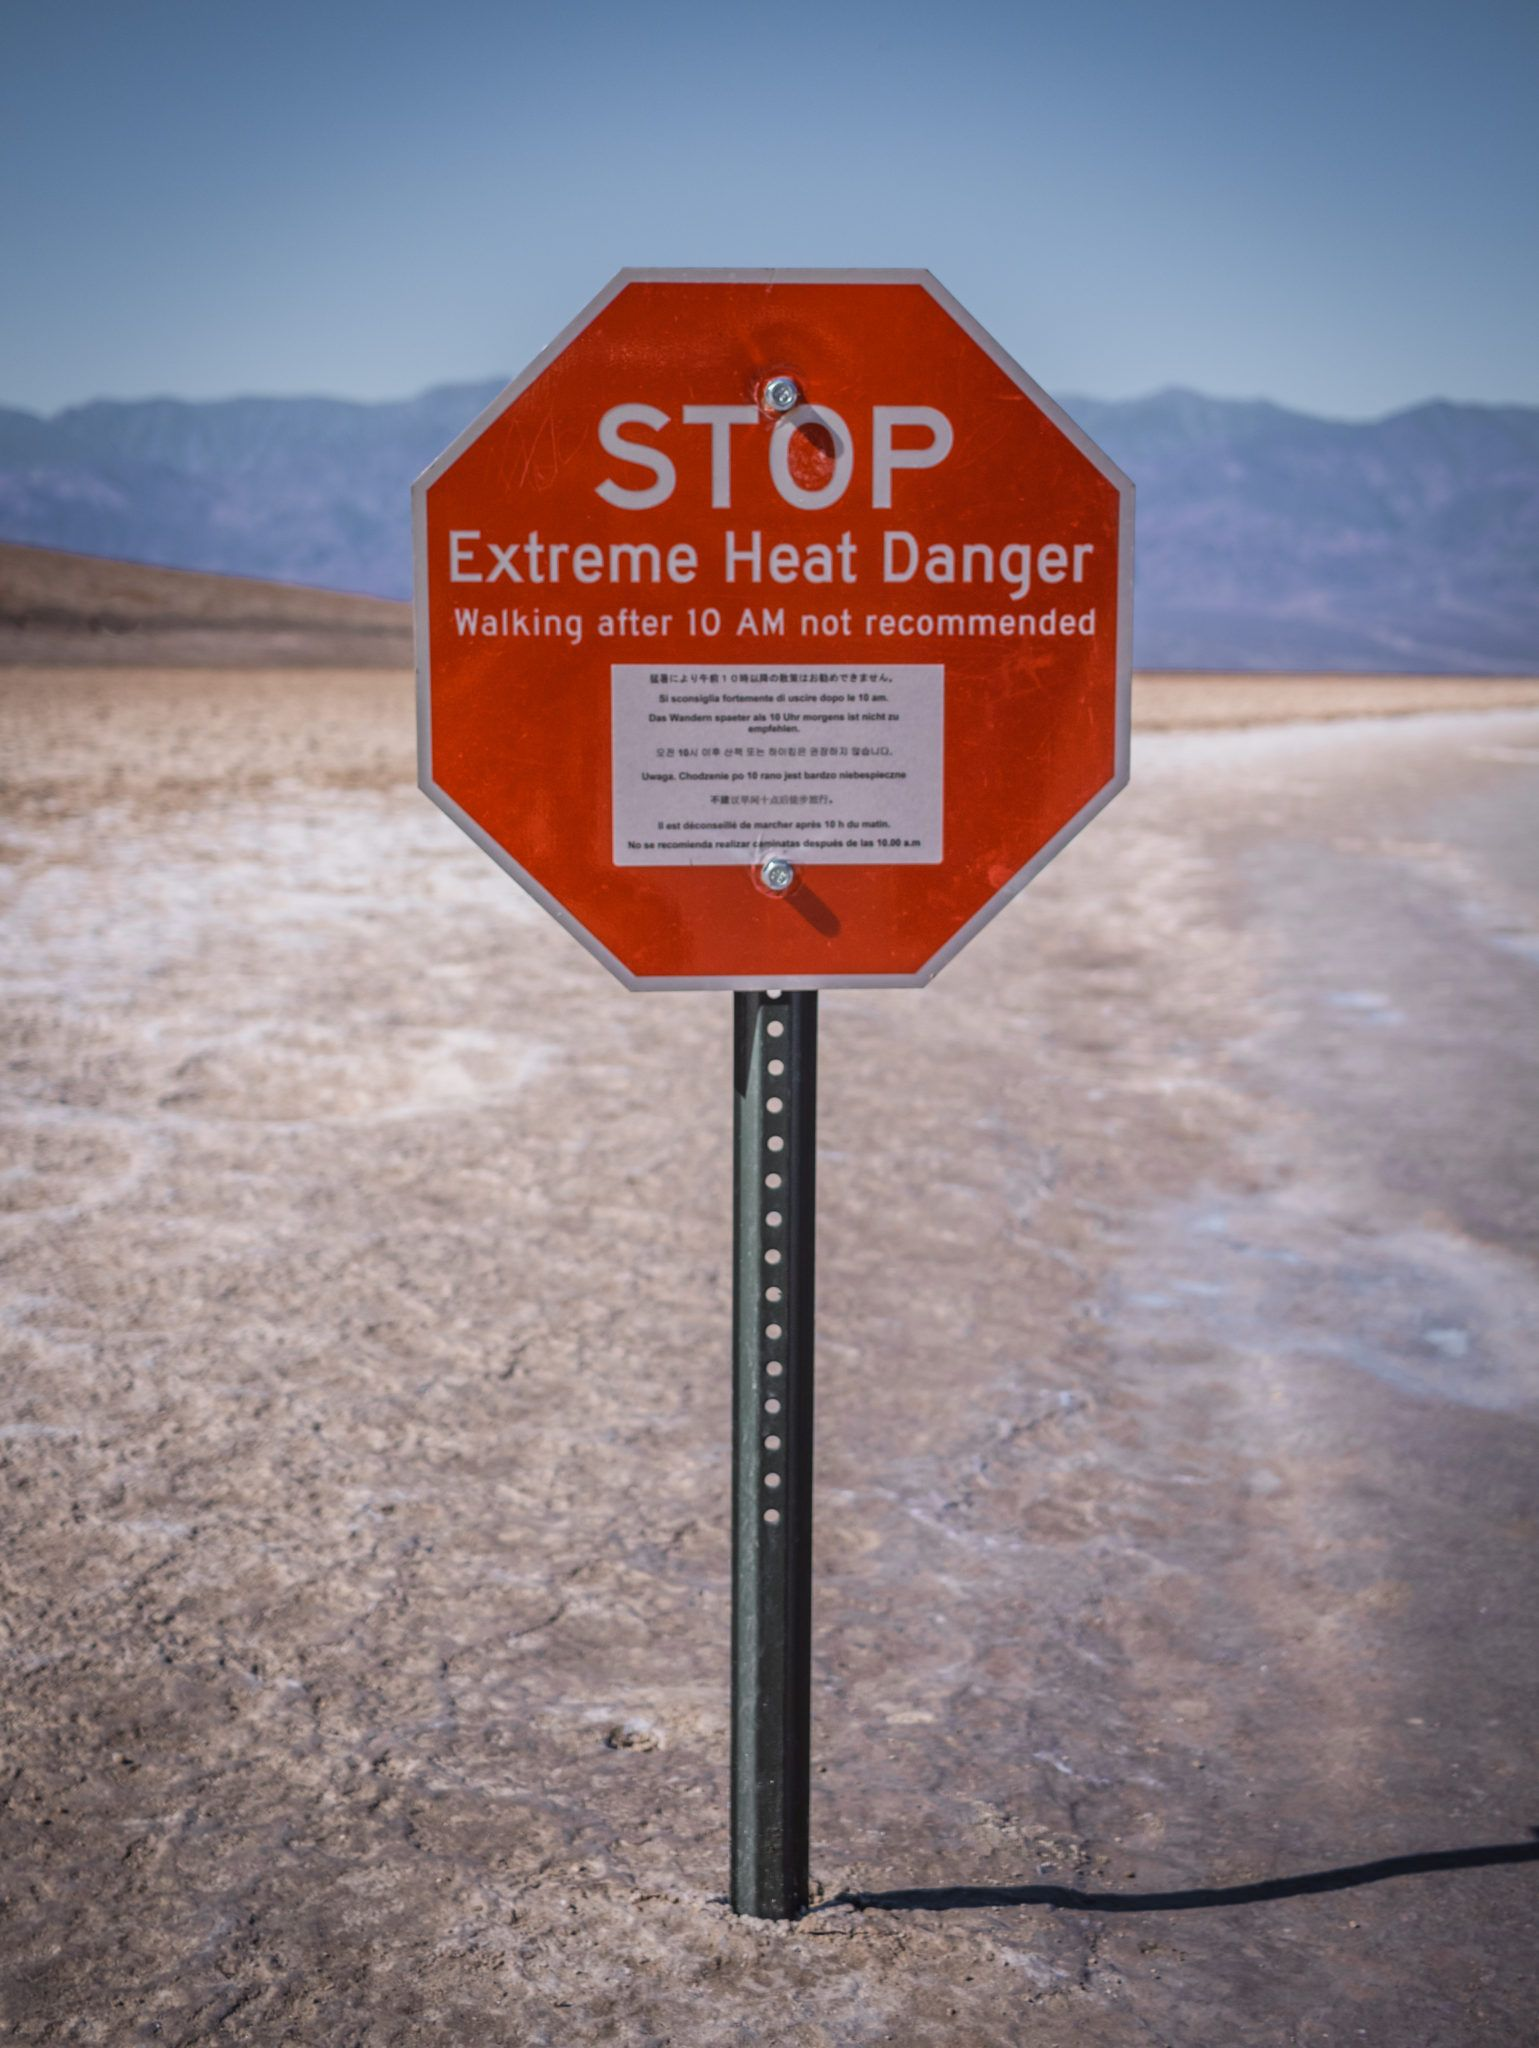 Badwater Basin Cool Adventures In The Hottest Place On Earth The Break Of Dawns In 2020 National Parks Usa Death Valley National Park Travel Usa